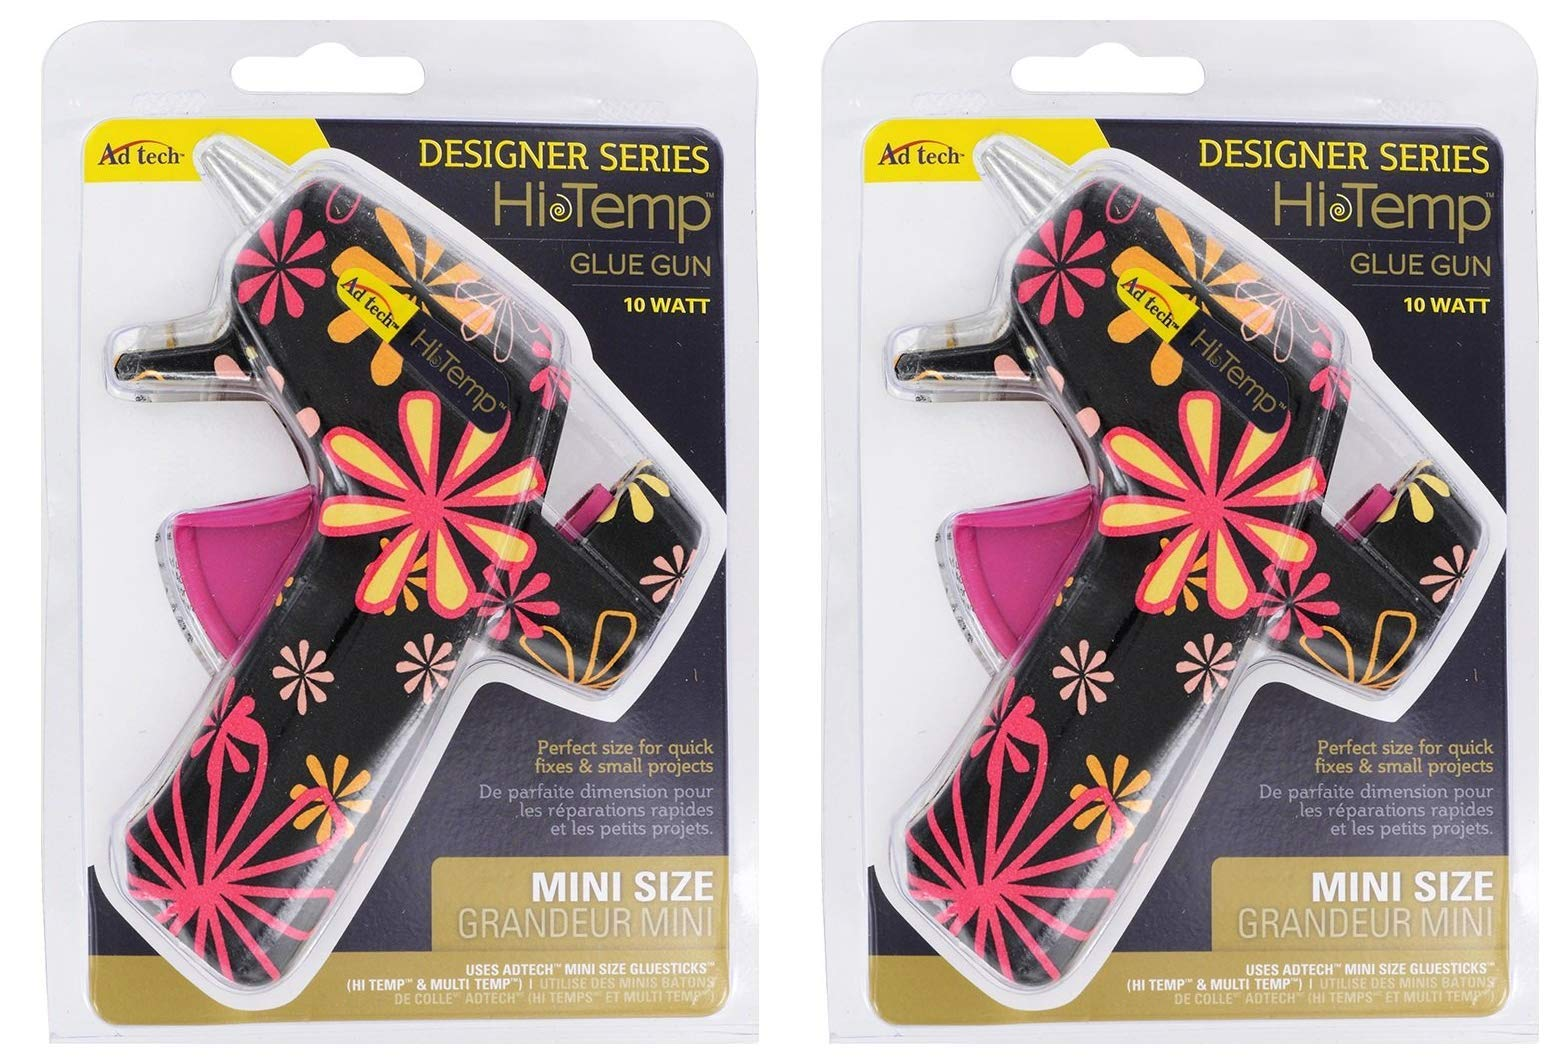 AdTech High Temp Mini Hot Glue Gun in Black Daisy | Arts and Crafts and DIY | Fun and Cute Tool | Item #0502 (Тwo Рack)